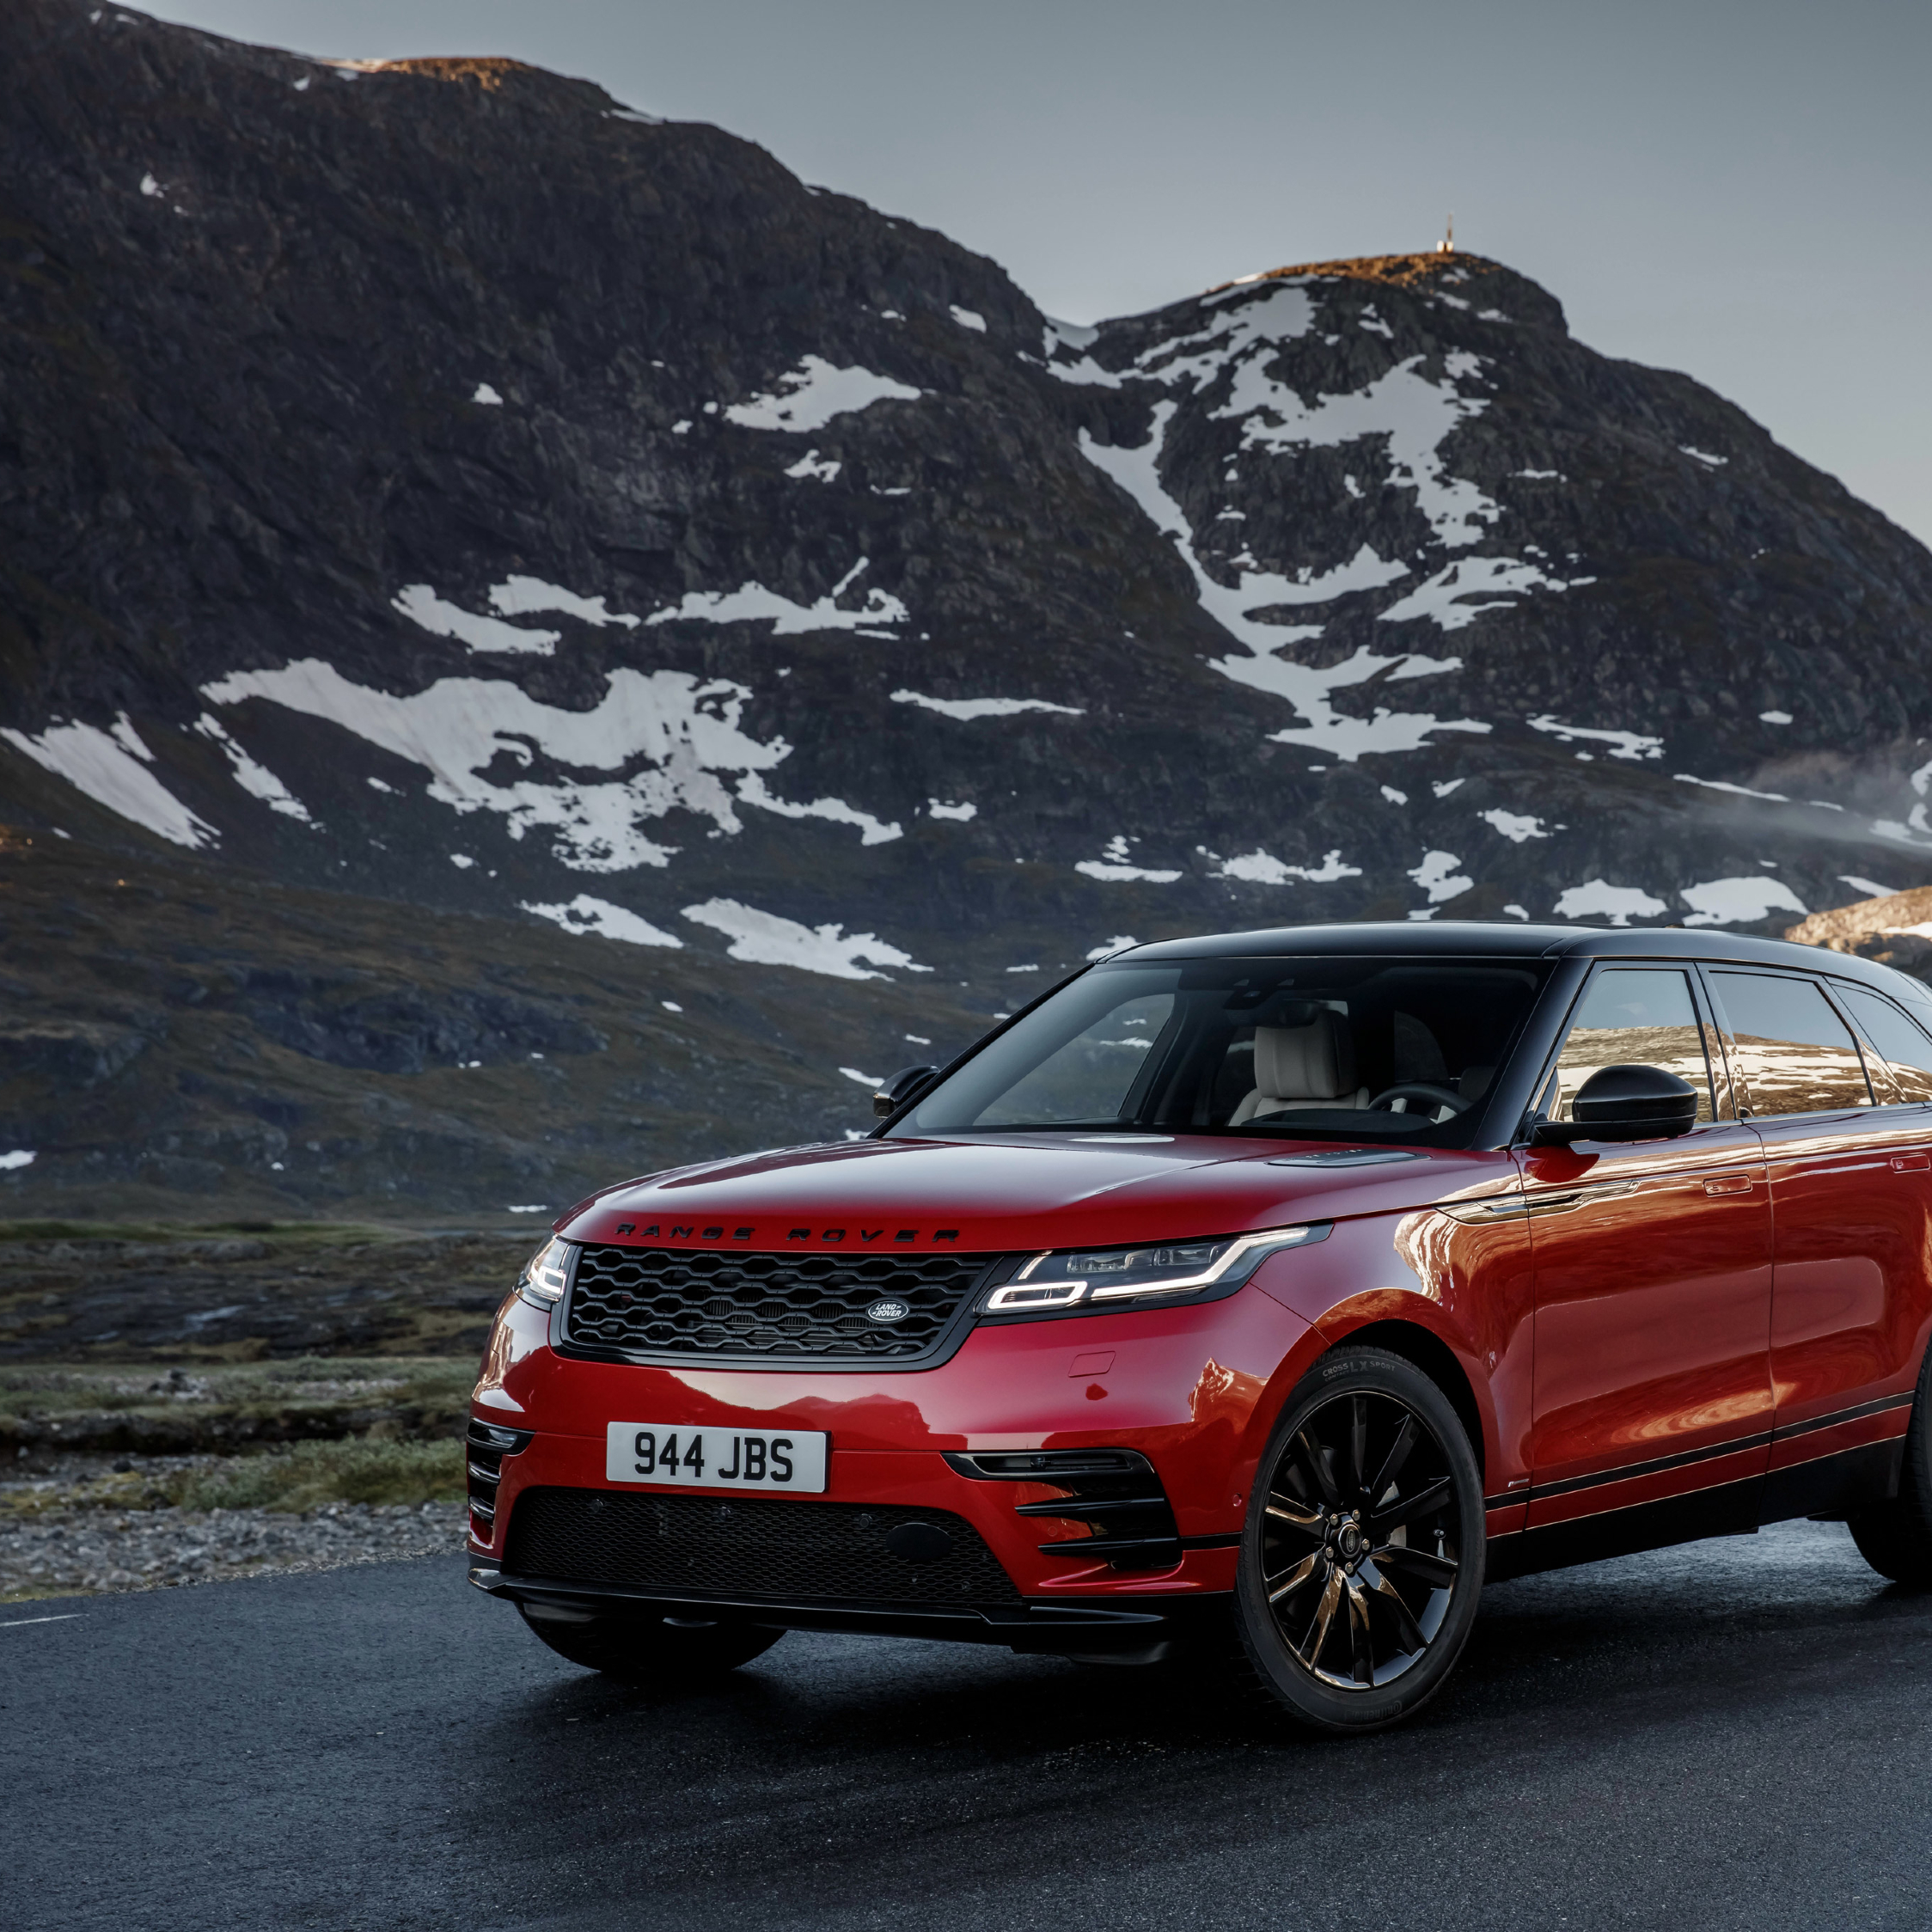 range rover velar r dynamic d300 2017 hd 4k wallpaper. Black Bedroom Furniture Sets. Home Design Ideas